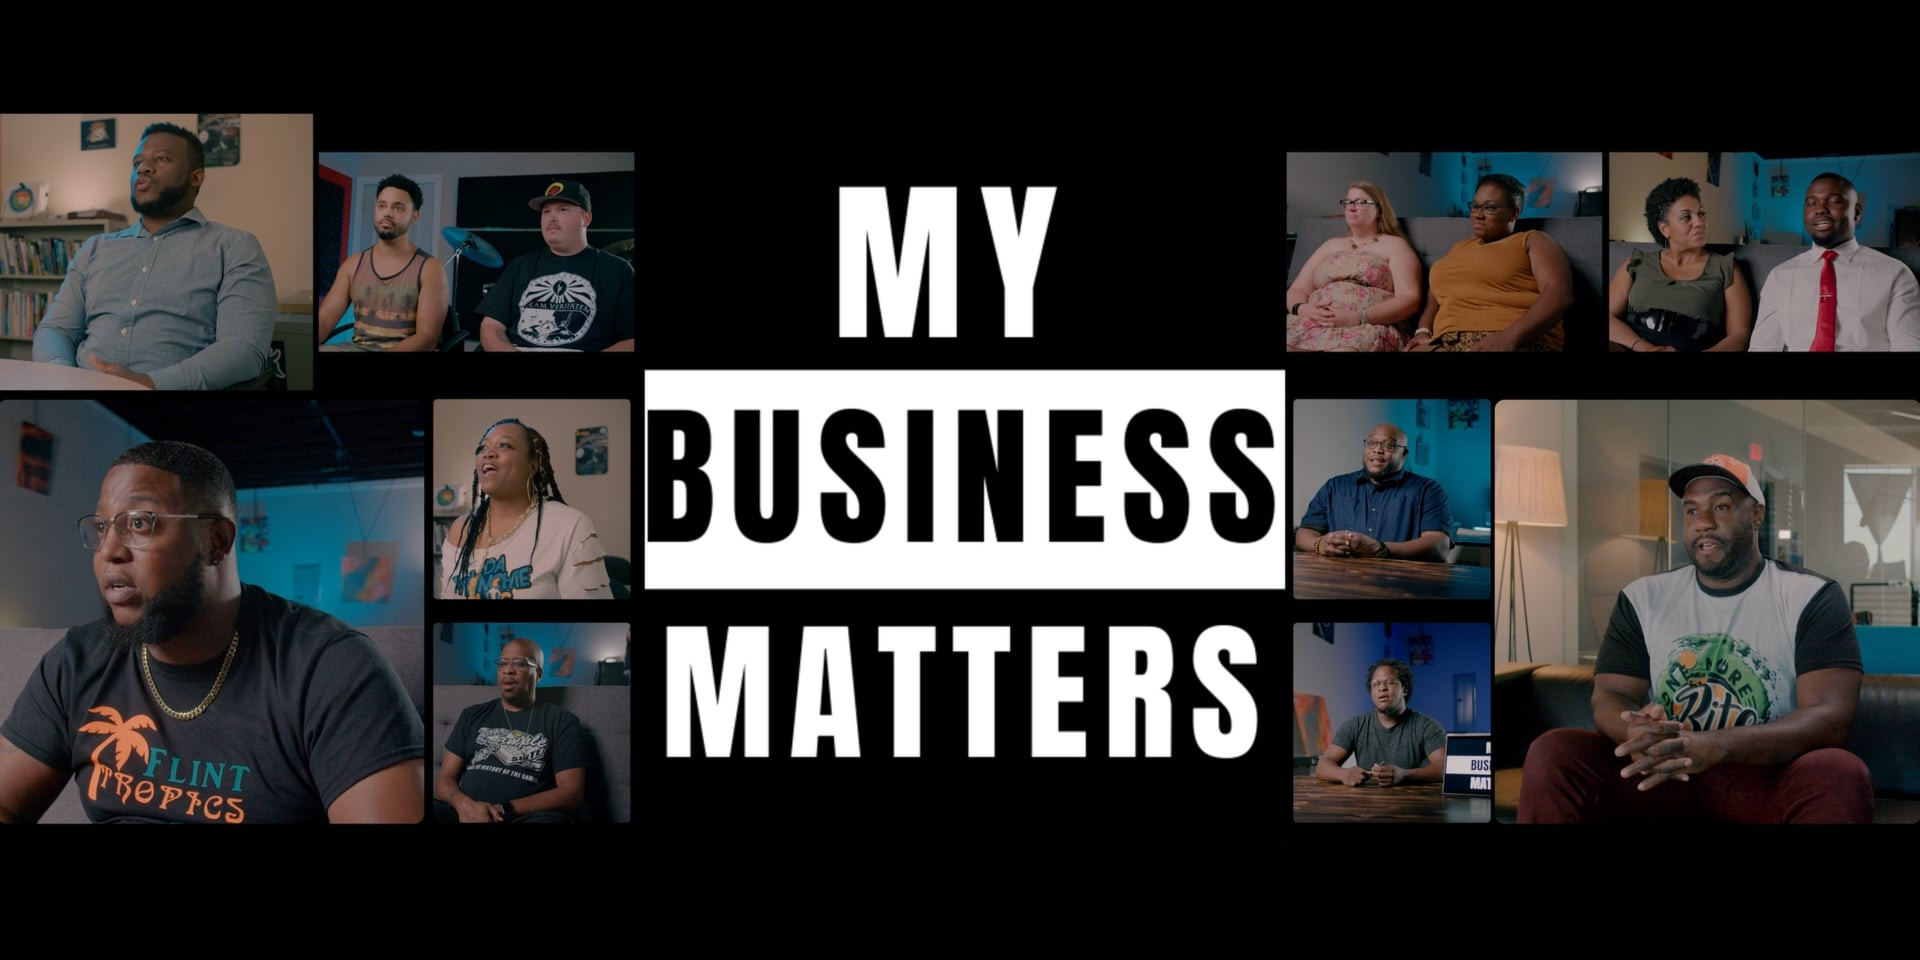 My Business matters campaign - Empower By GoDaddy